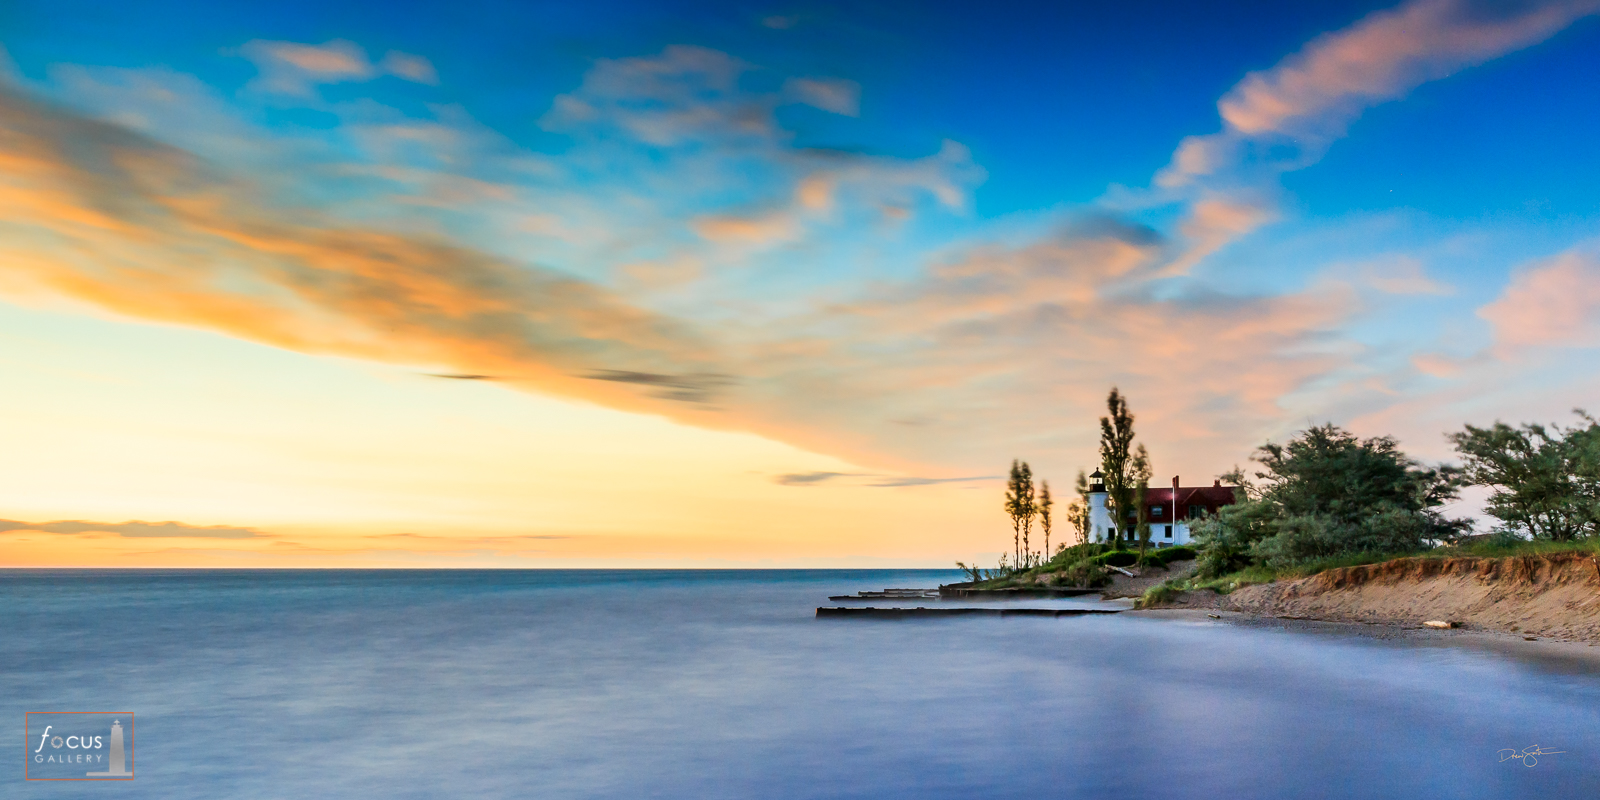 Sunset colors over Lake Michigan and Point Betsie Lighthouse.